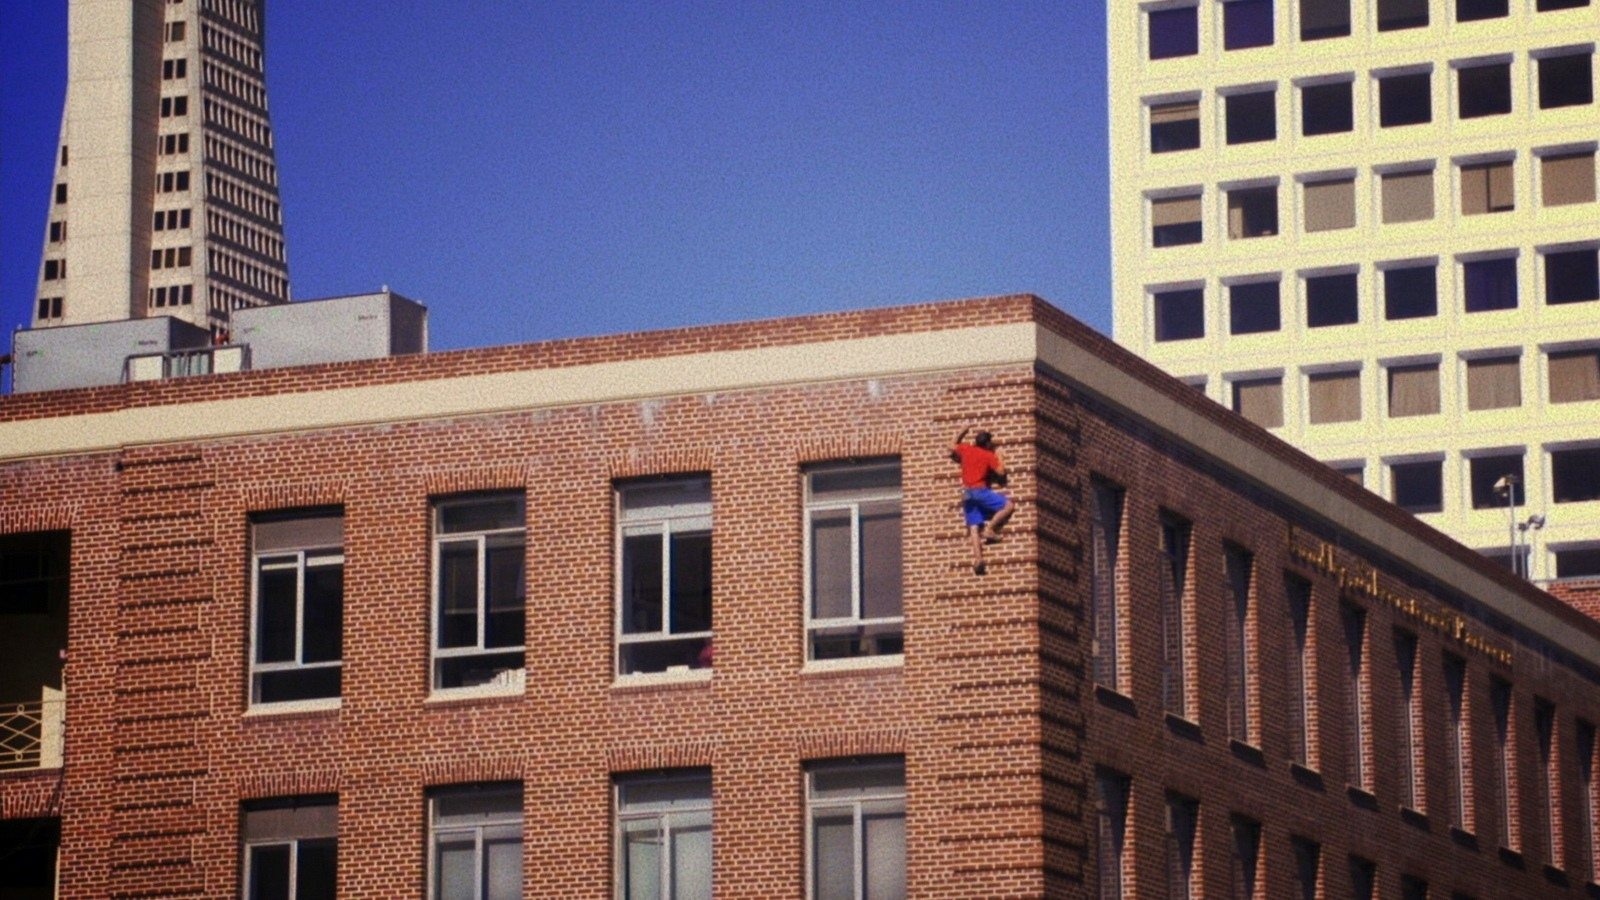 Image: Expert Rock climber Alex Honnold climbs buildings along with natural rock faces.